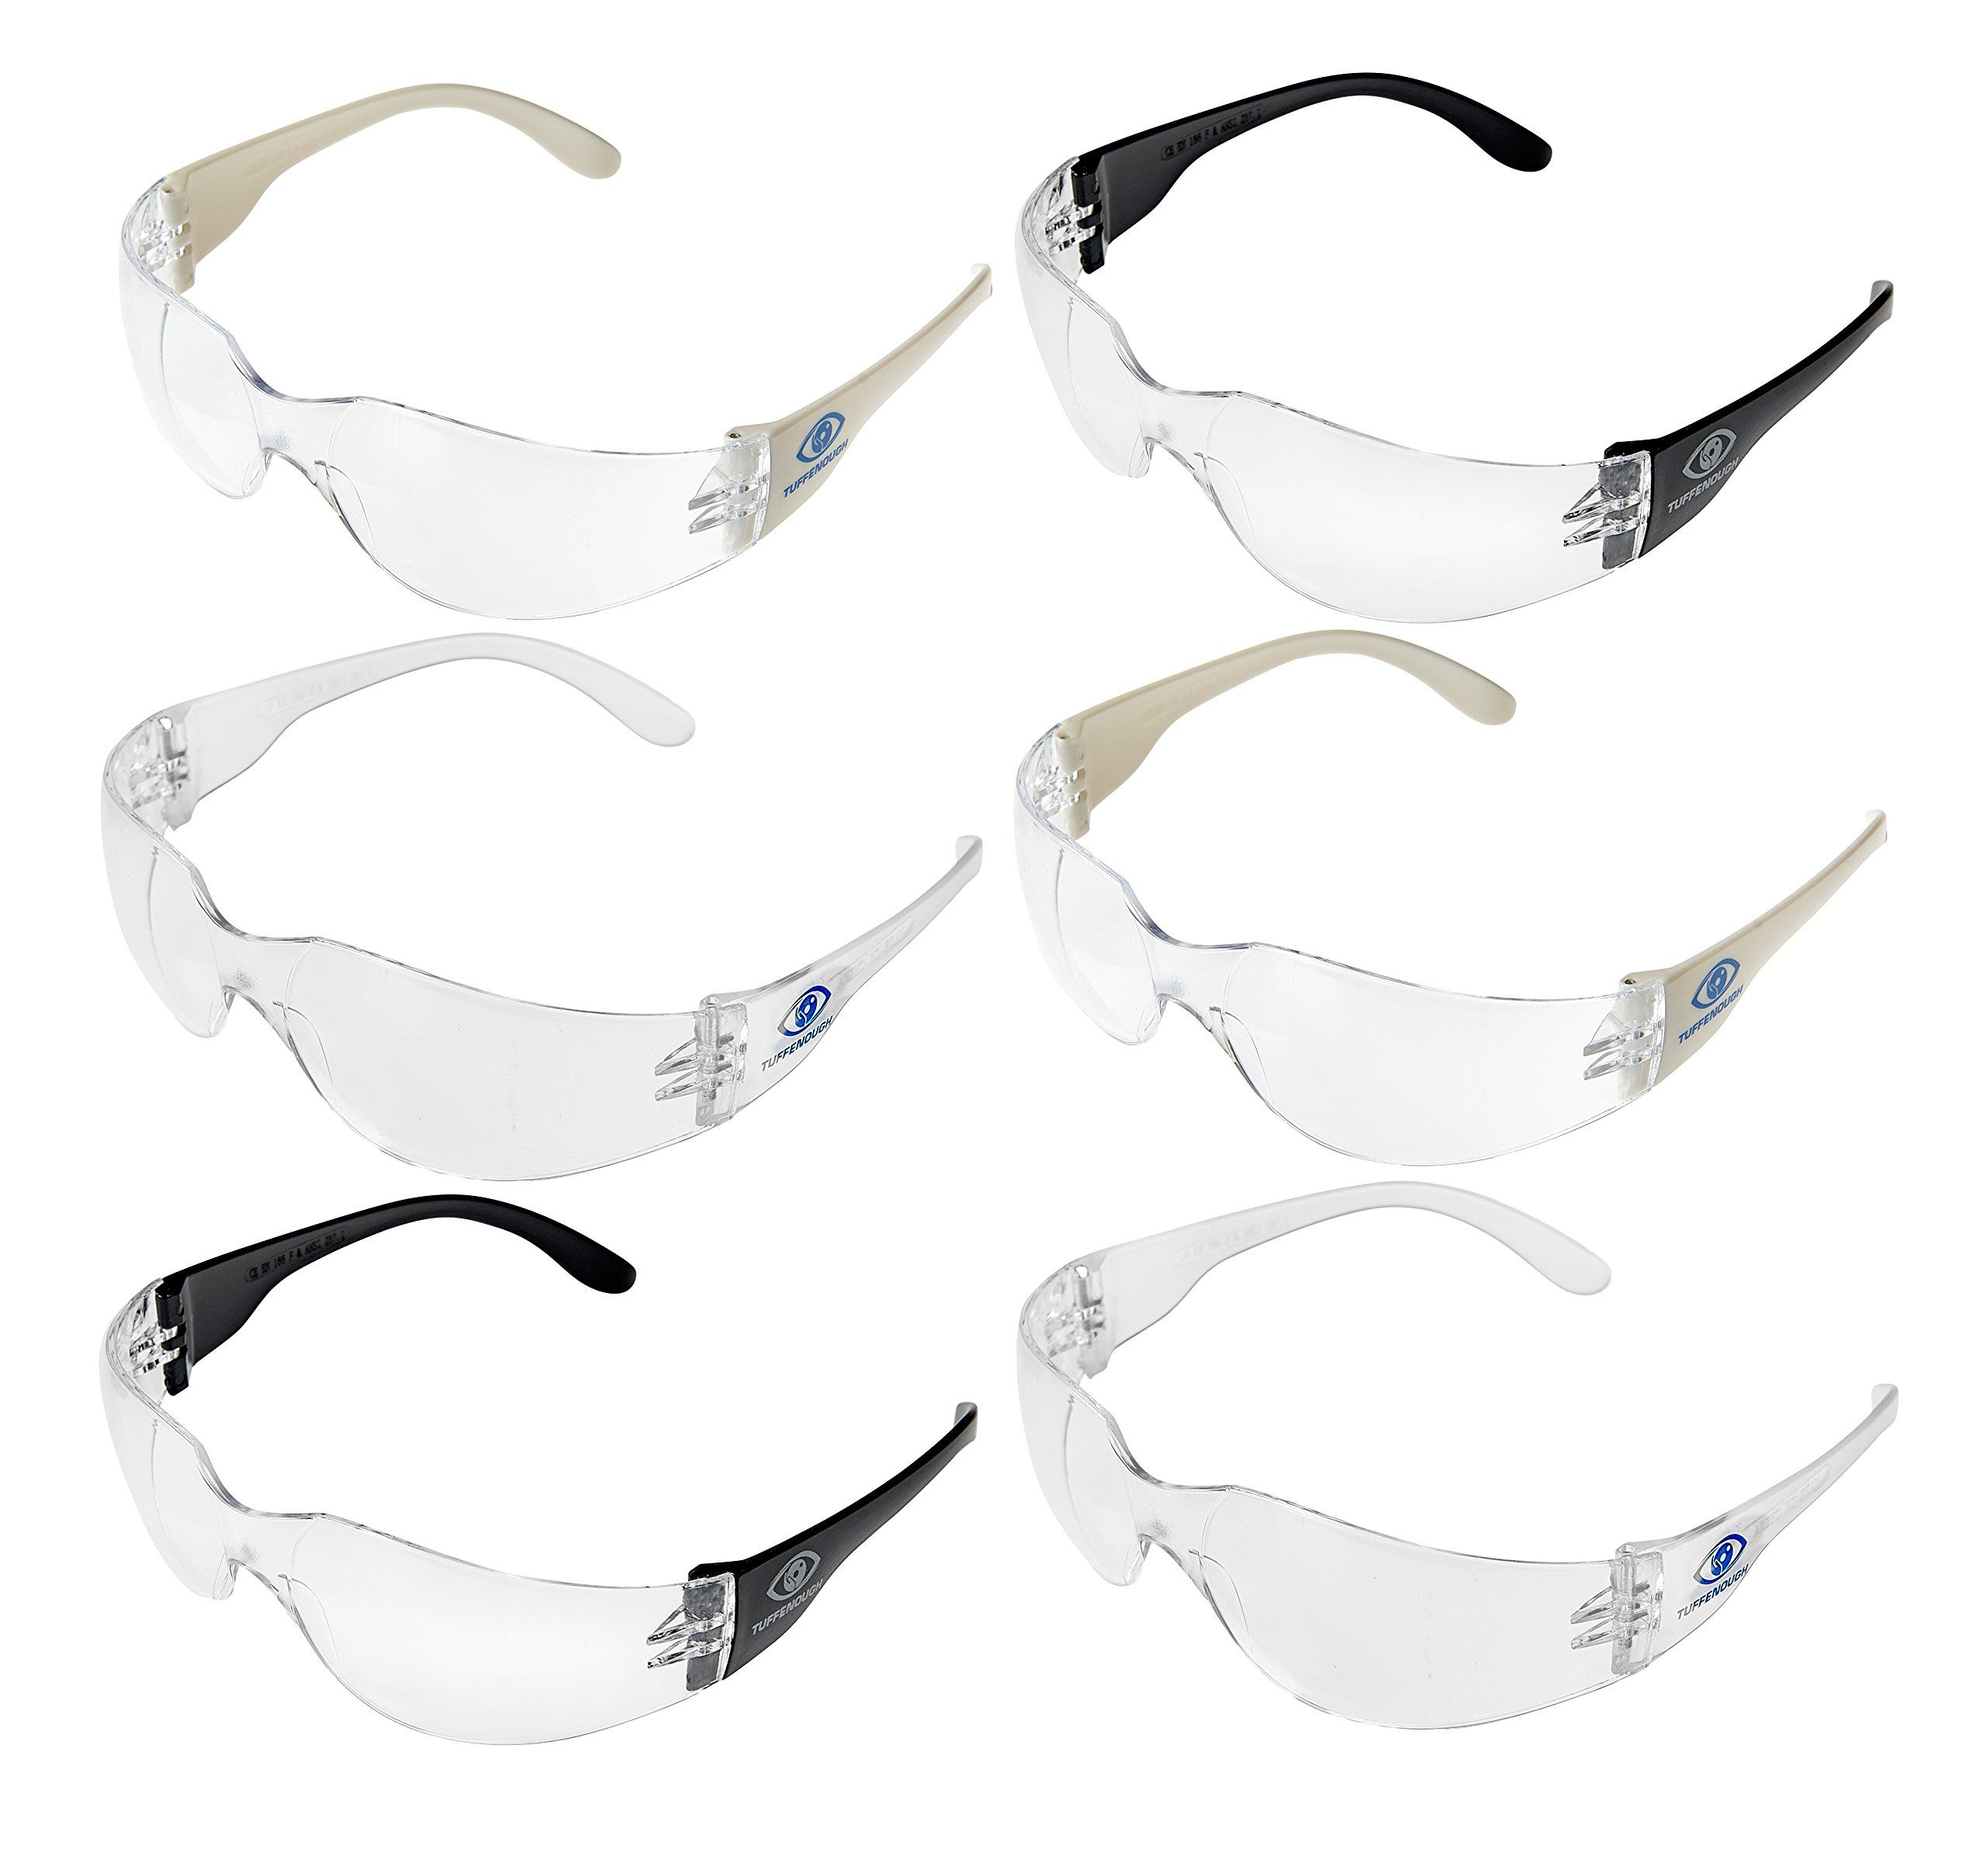 Tuffenough Anti Fog Safety Glasses 6 Piece >>> You can